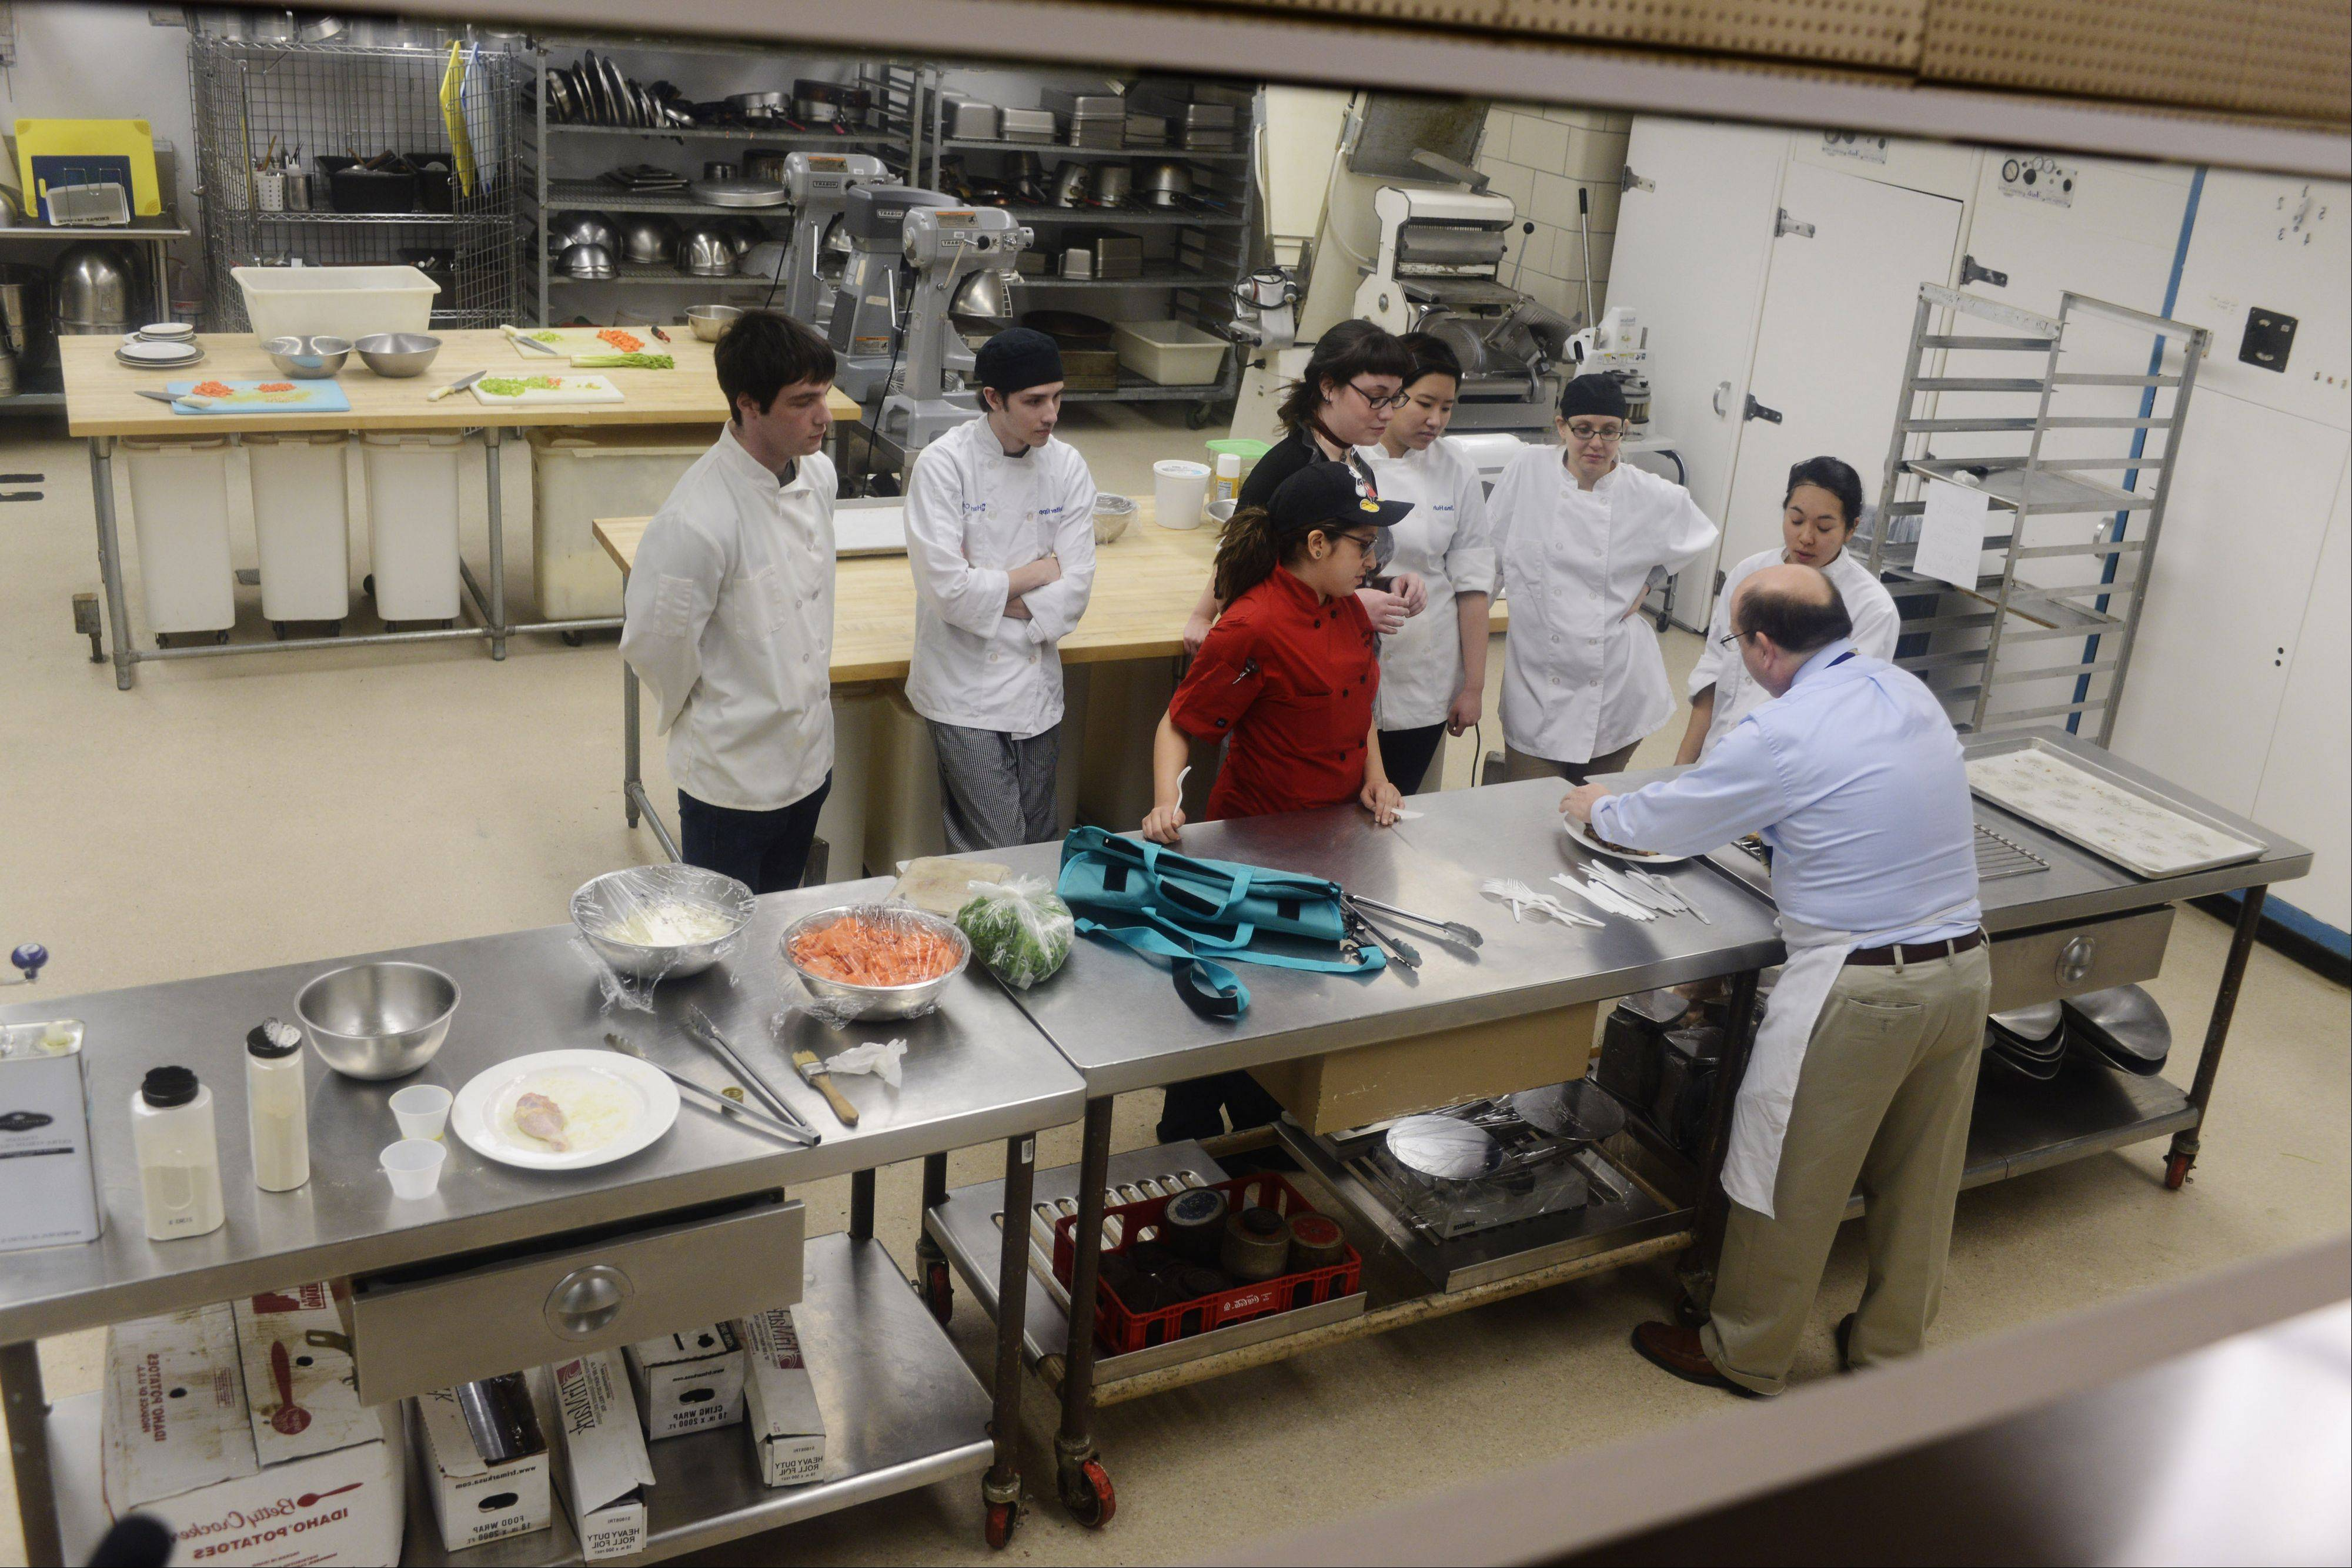 Marisa Marquez, in red, and her fellow students gather around her completed dish as Patrick Beach, head of the hospitality management program, talks about her effort in the kitchen at Harper College in Palatine.